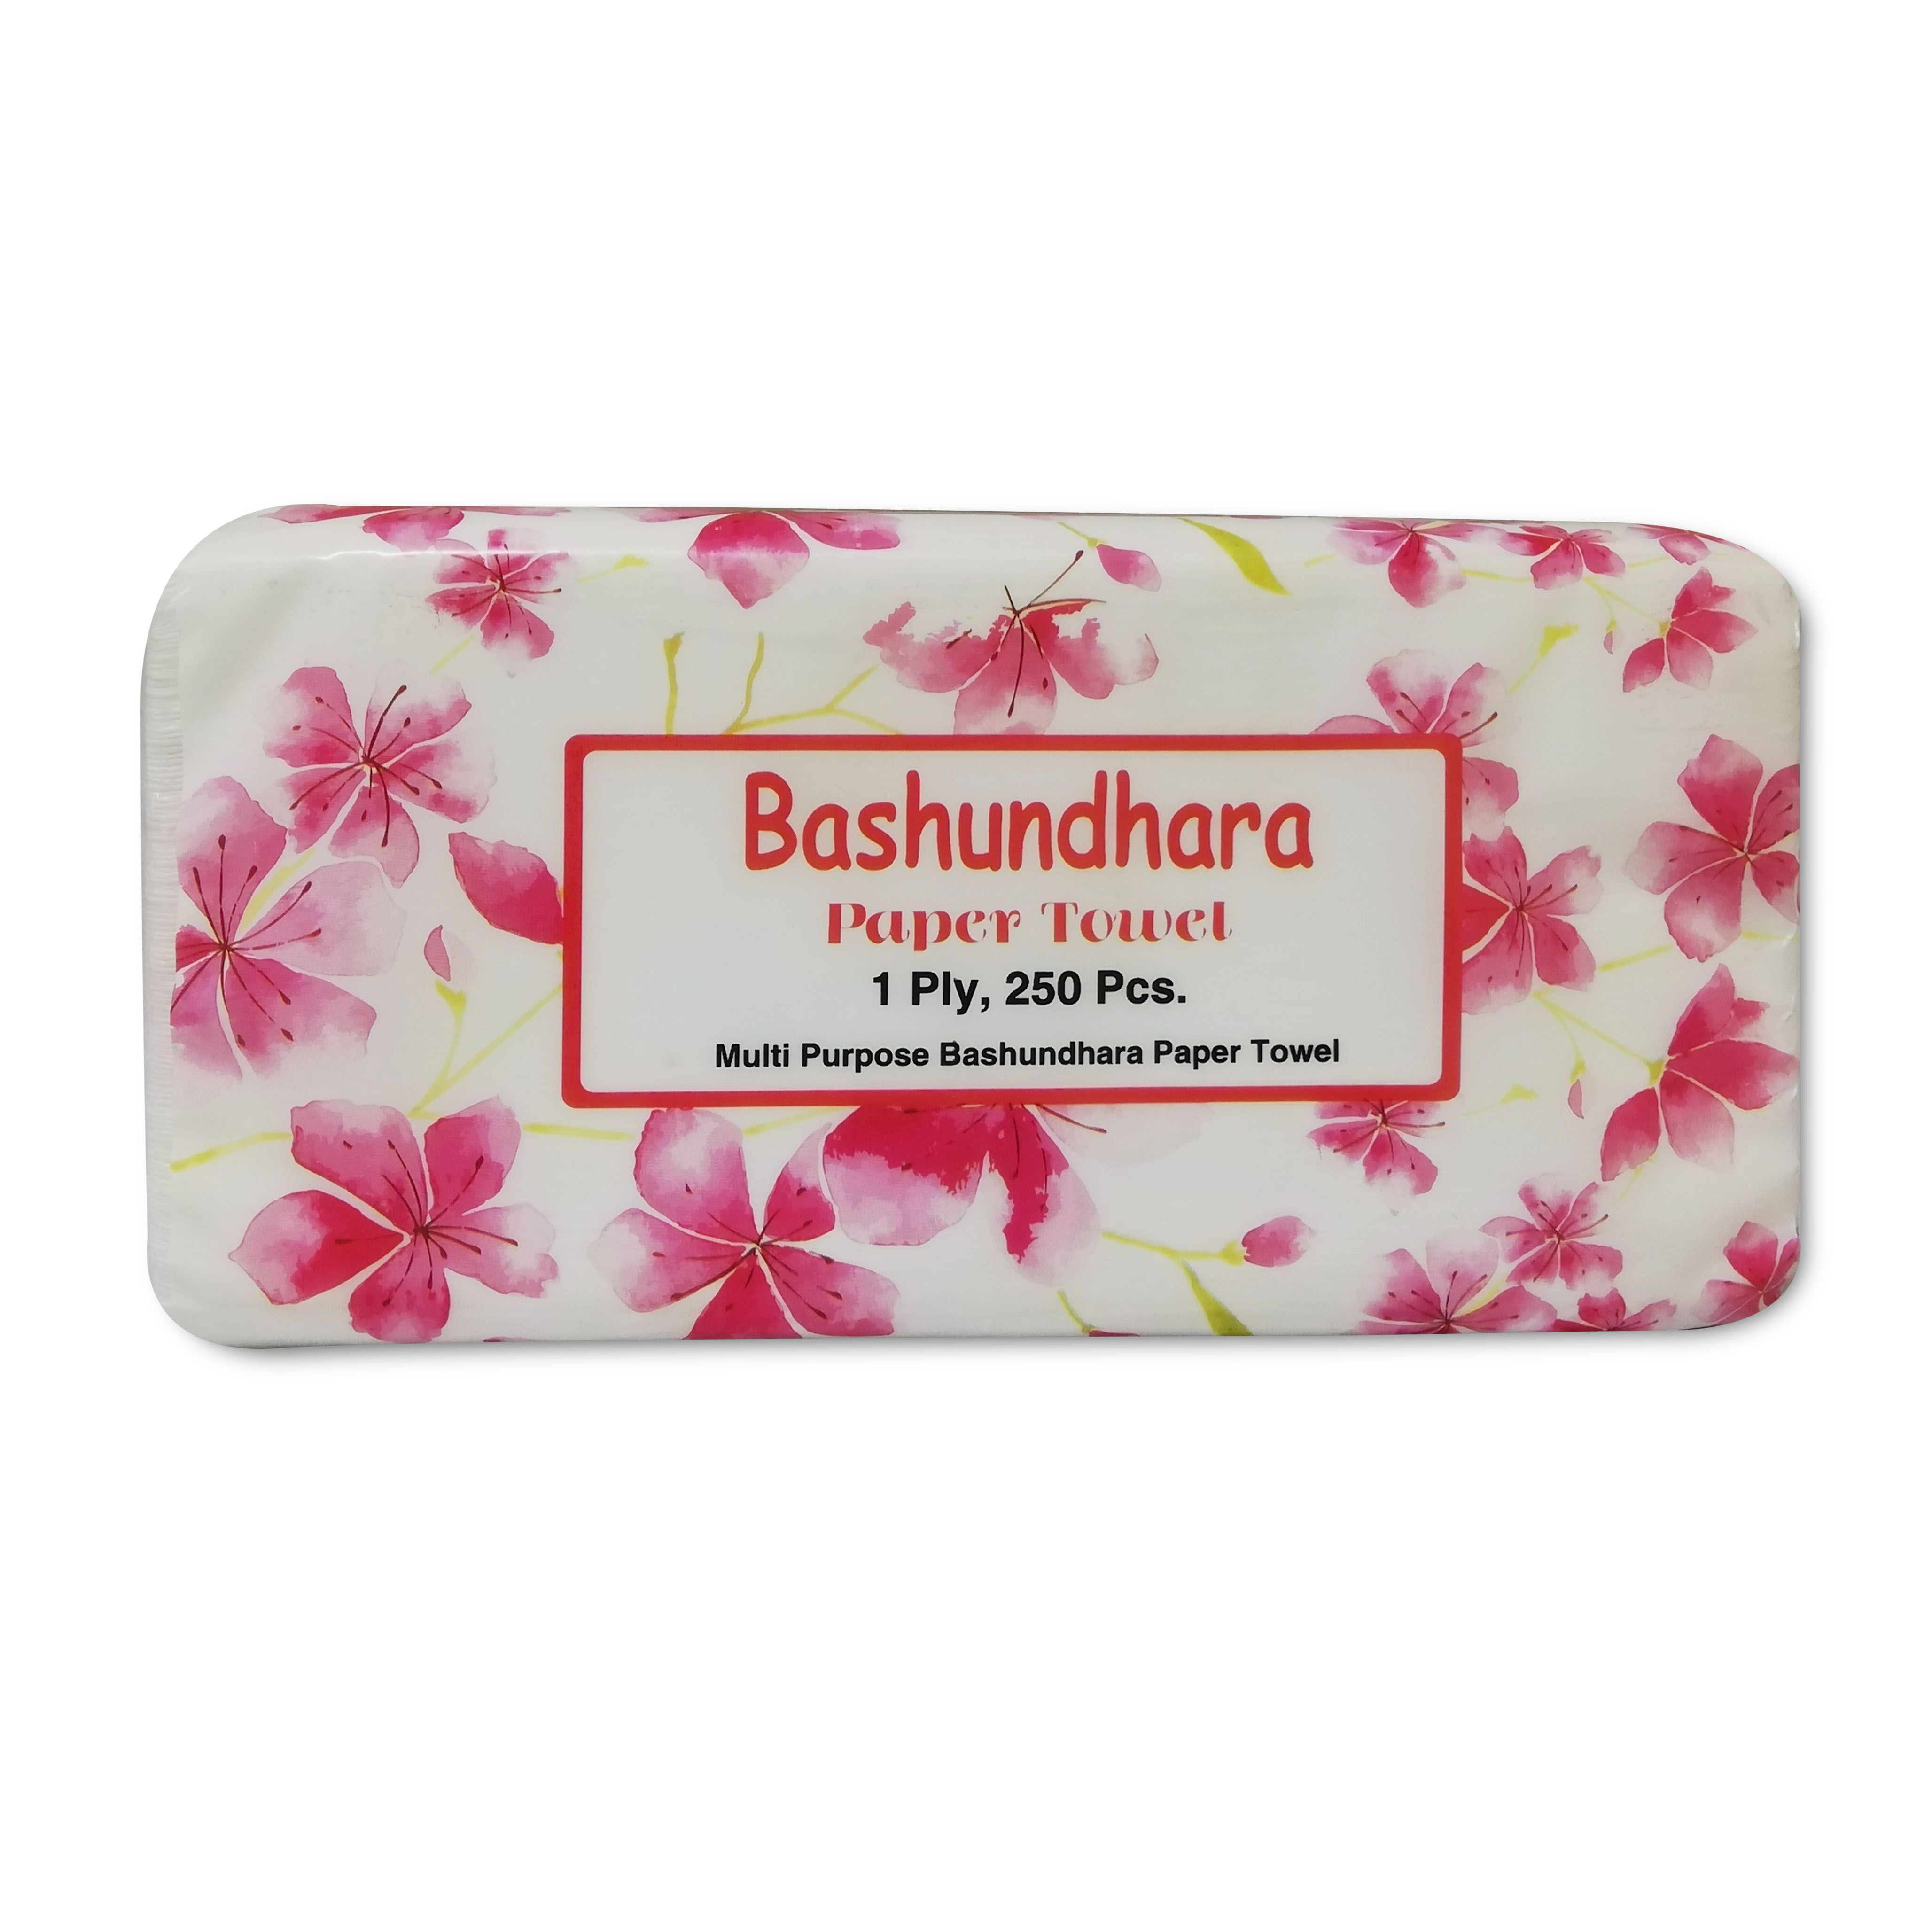 Bashundhara Paper Towel Tissue Paper 250x1 Ply